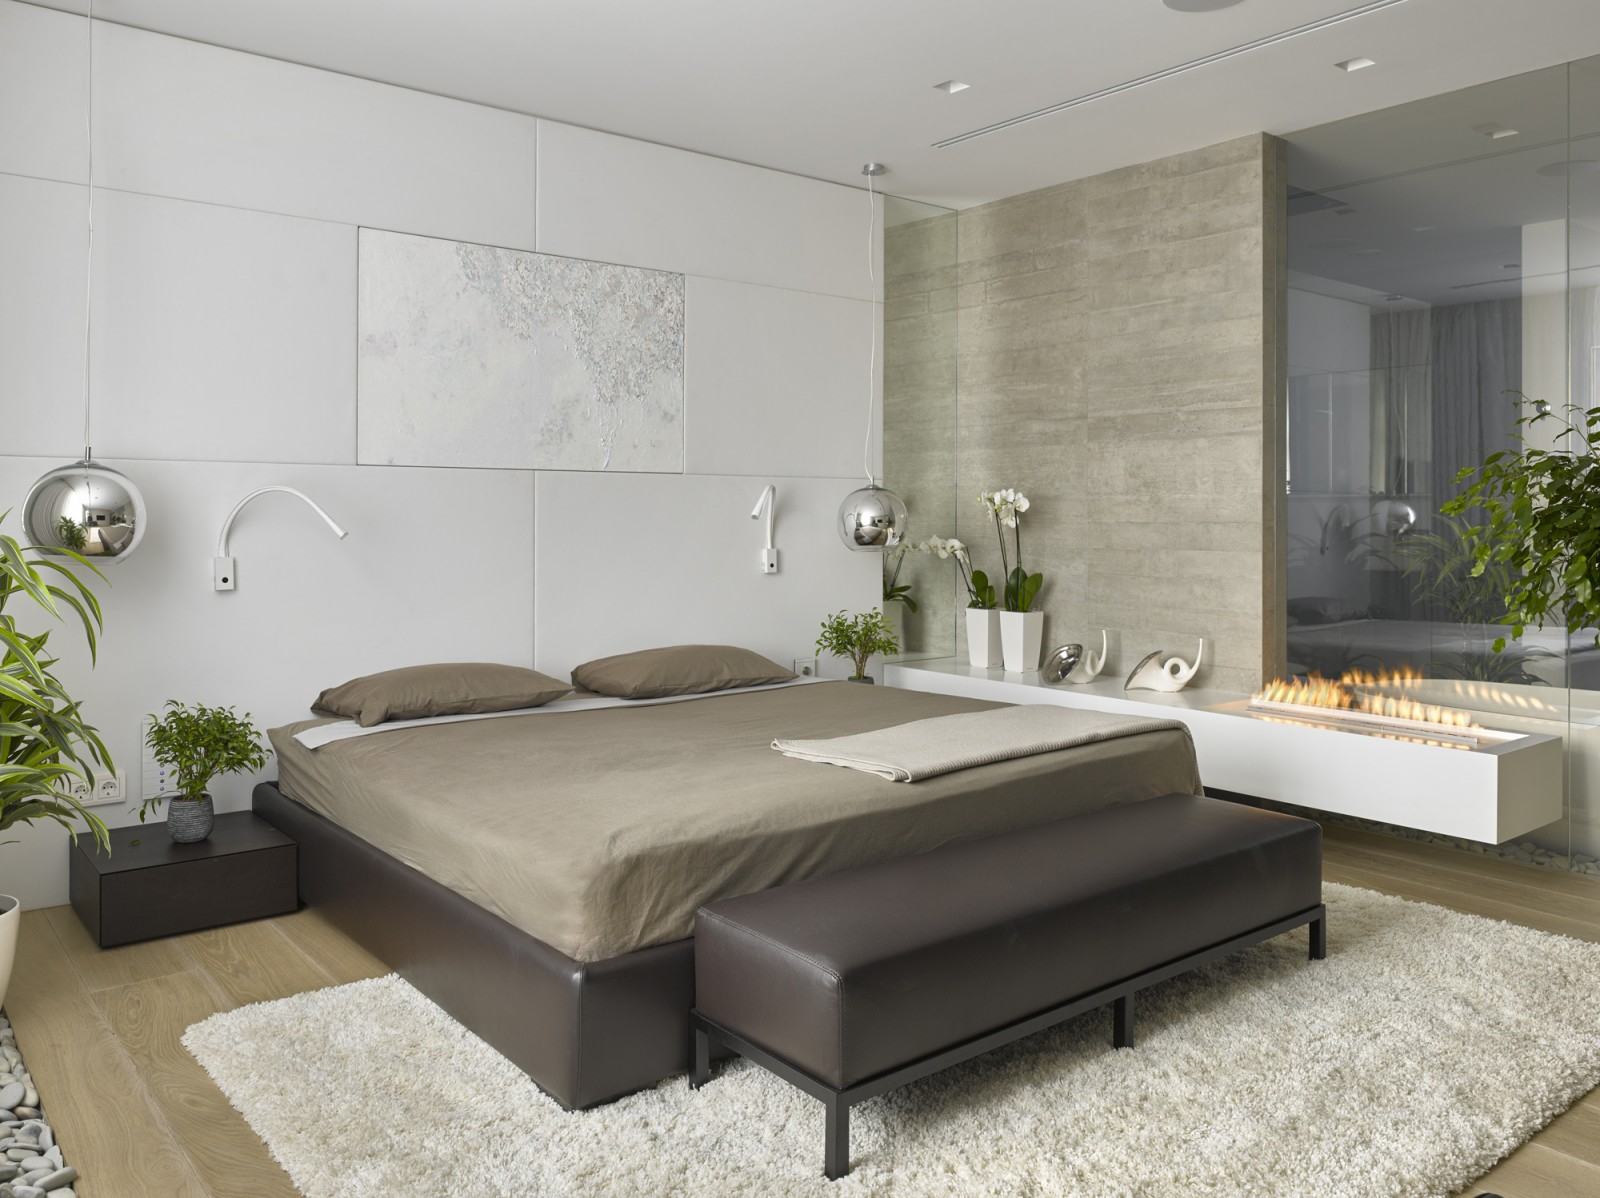 20 Best Small Modern Bedroom Ideas Architecture Beast in 12 Some of the Coolest Designs of How to Improve Modern Small Bedroom